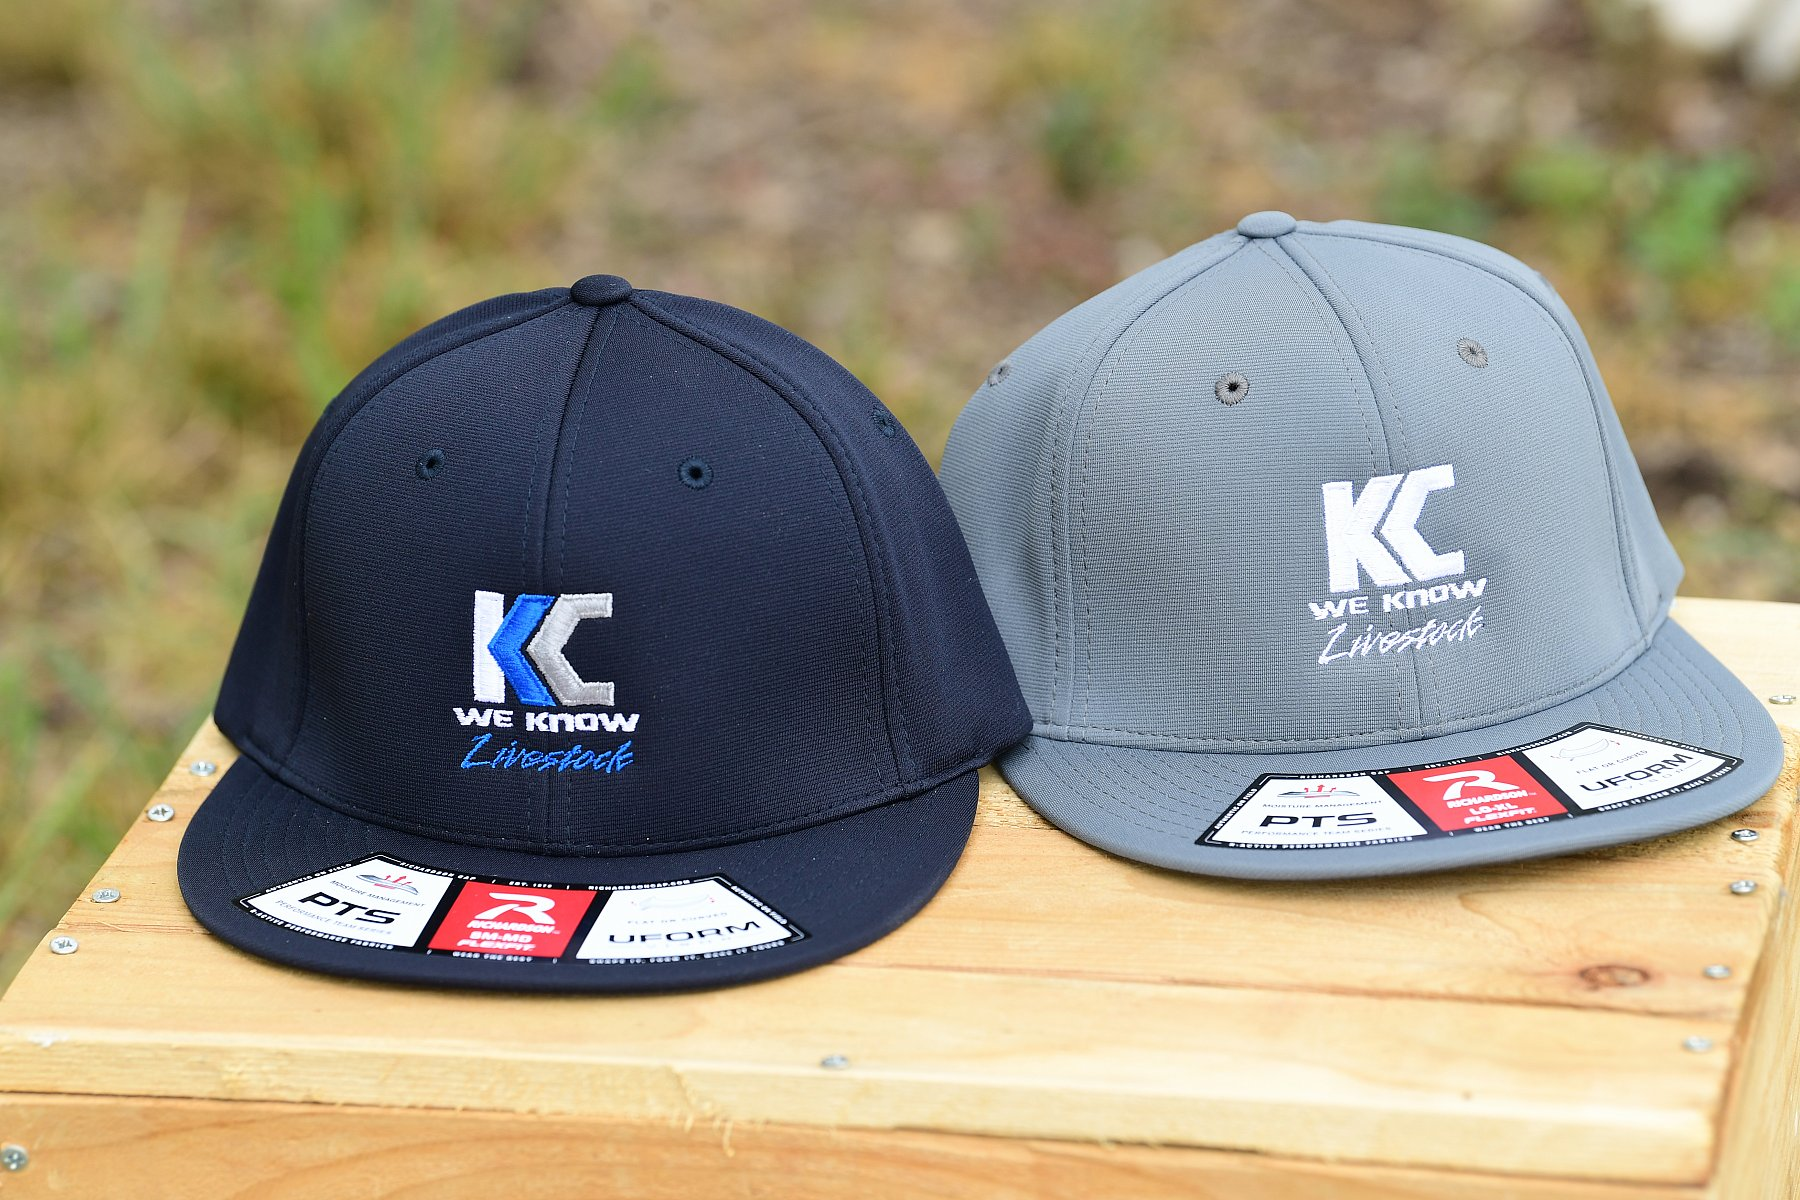 PTS20 Fitted Hat-Black Color Logo Size SM/MD | PTS20_KC5_3715.JPG